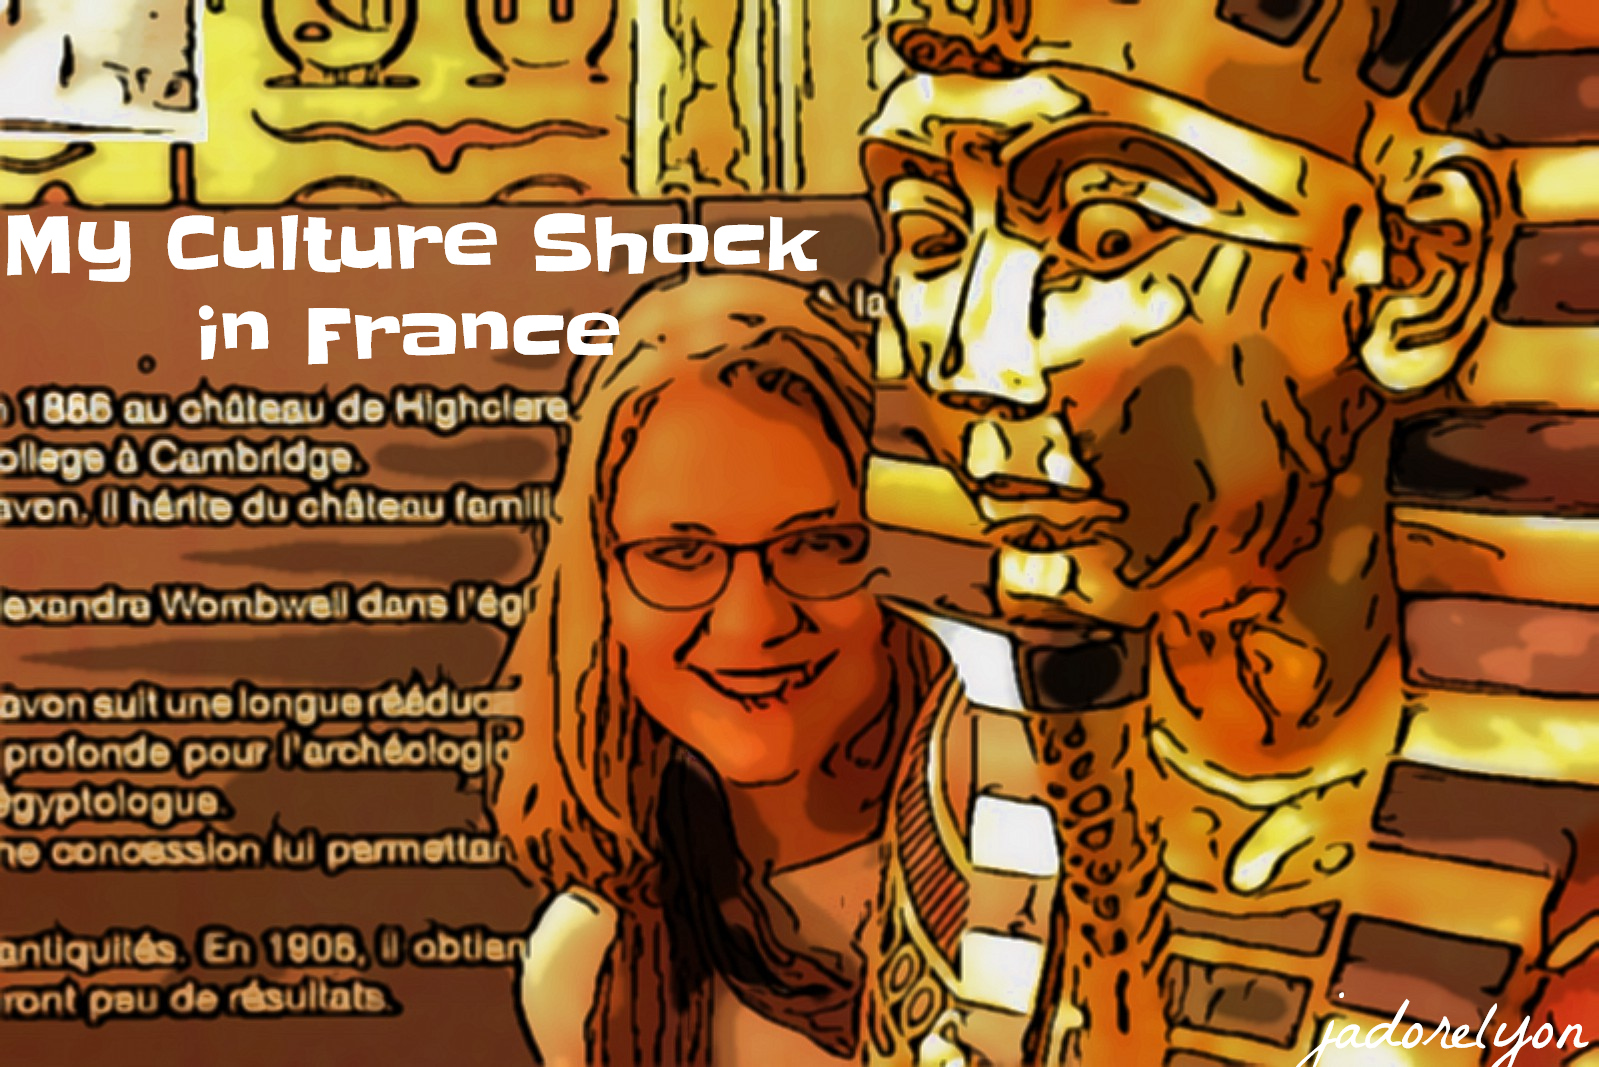 My Culture Shock in France1